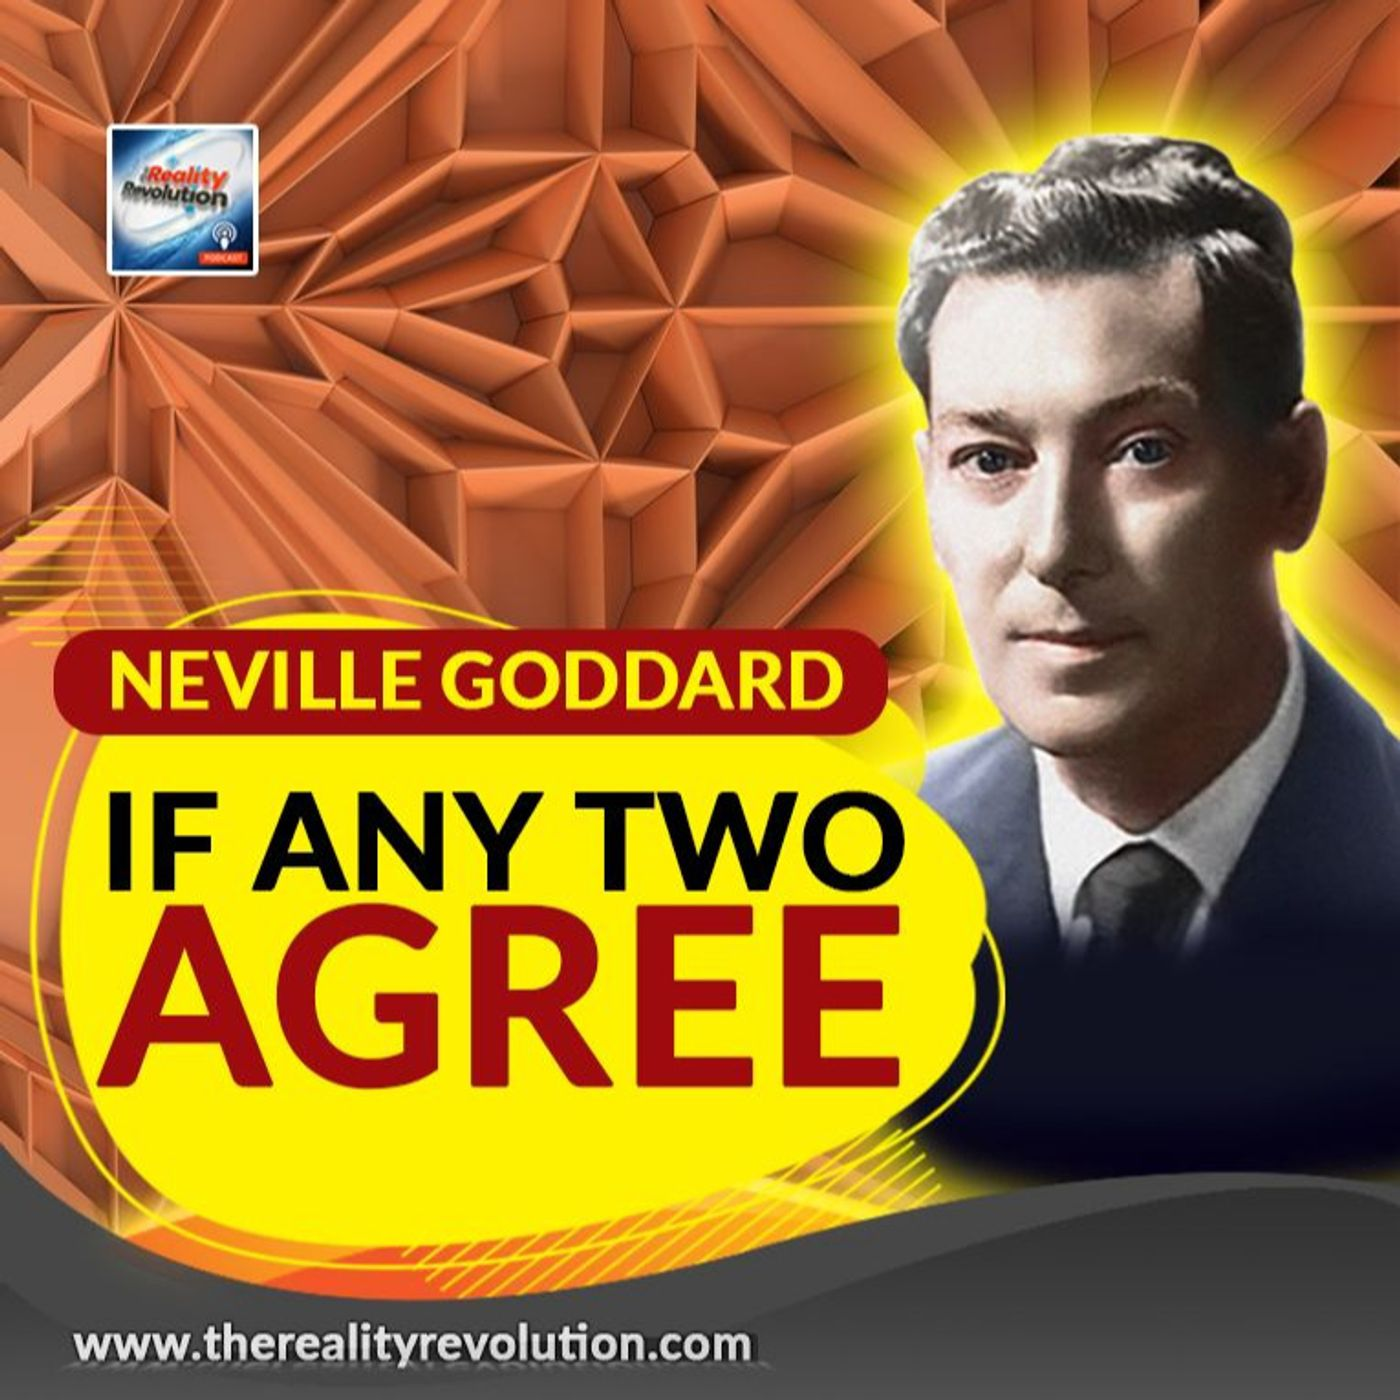 Neville Goddard - If Any Two Agree